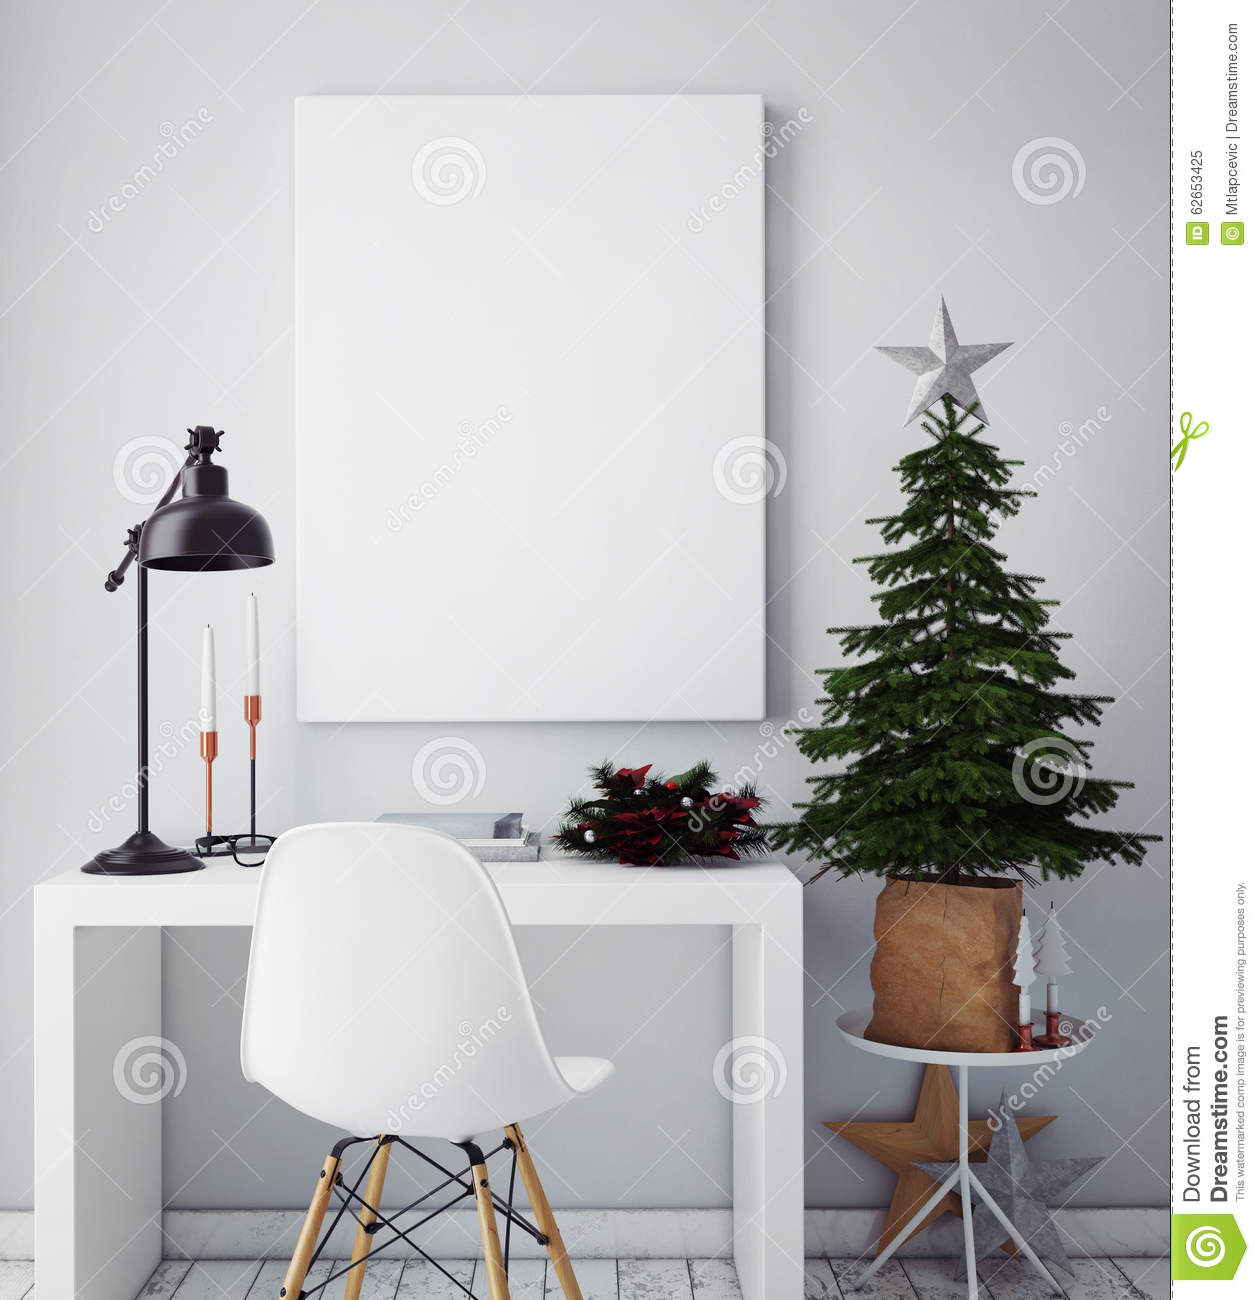 Affiche Decoration Interieur Affiche Decoration Interieur Top Affiche Encadre